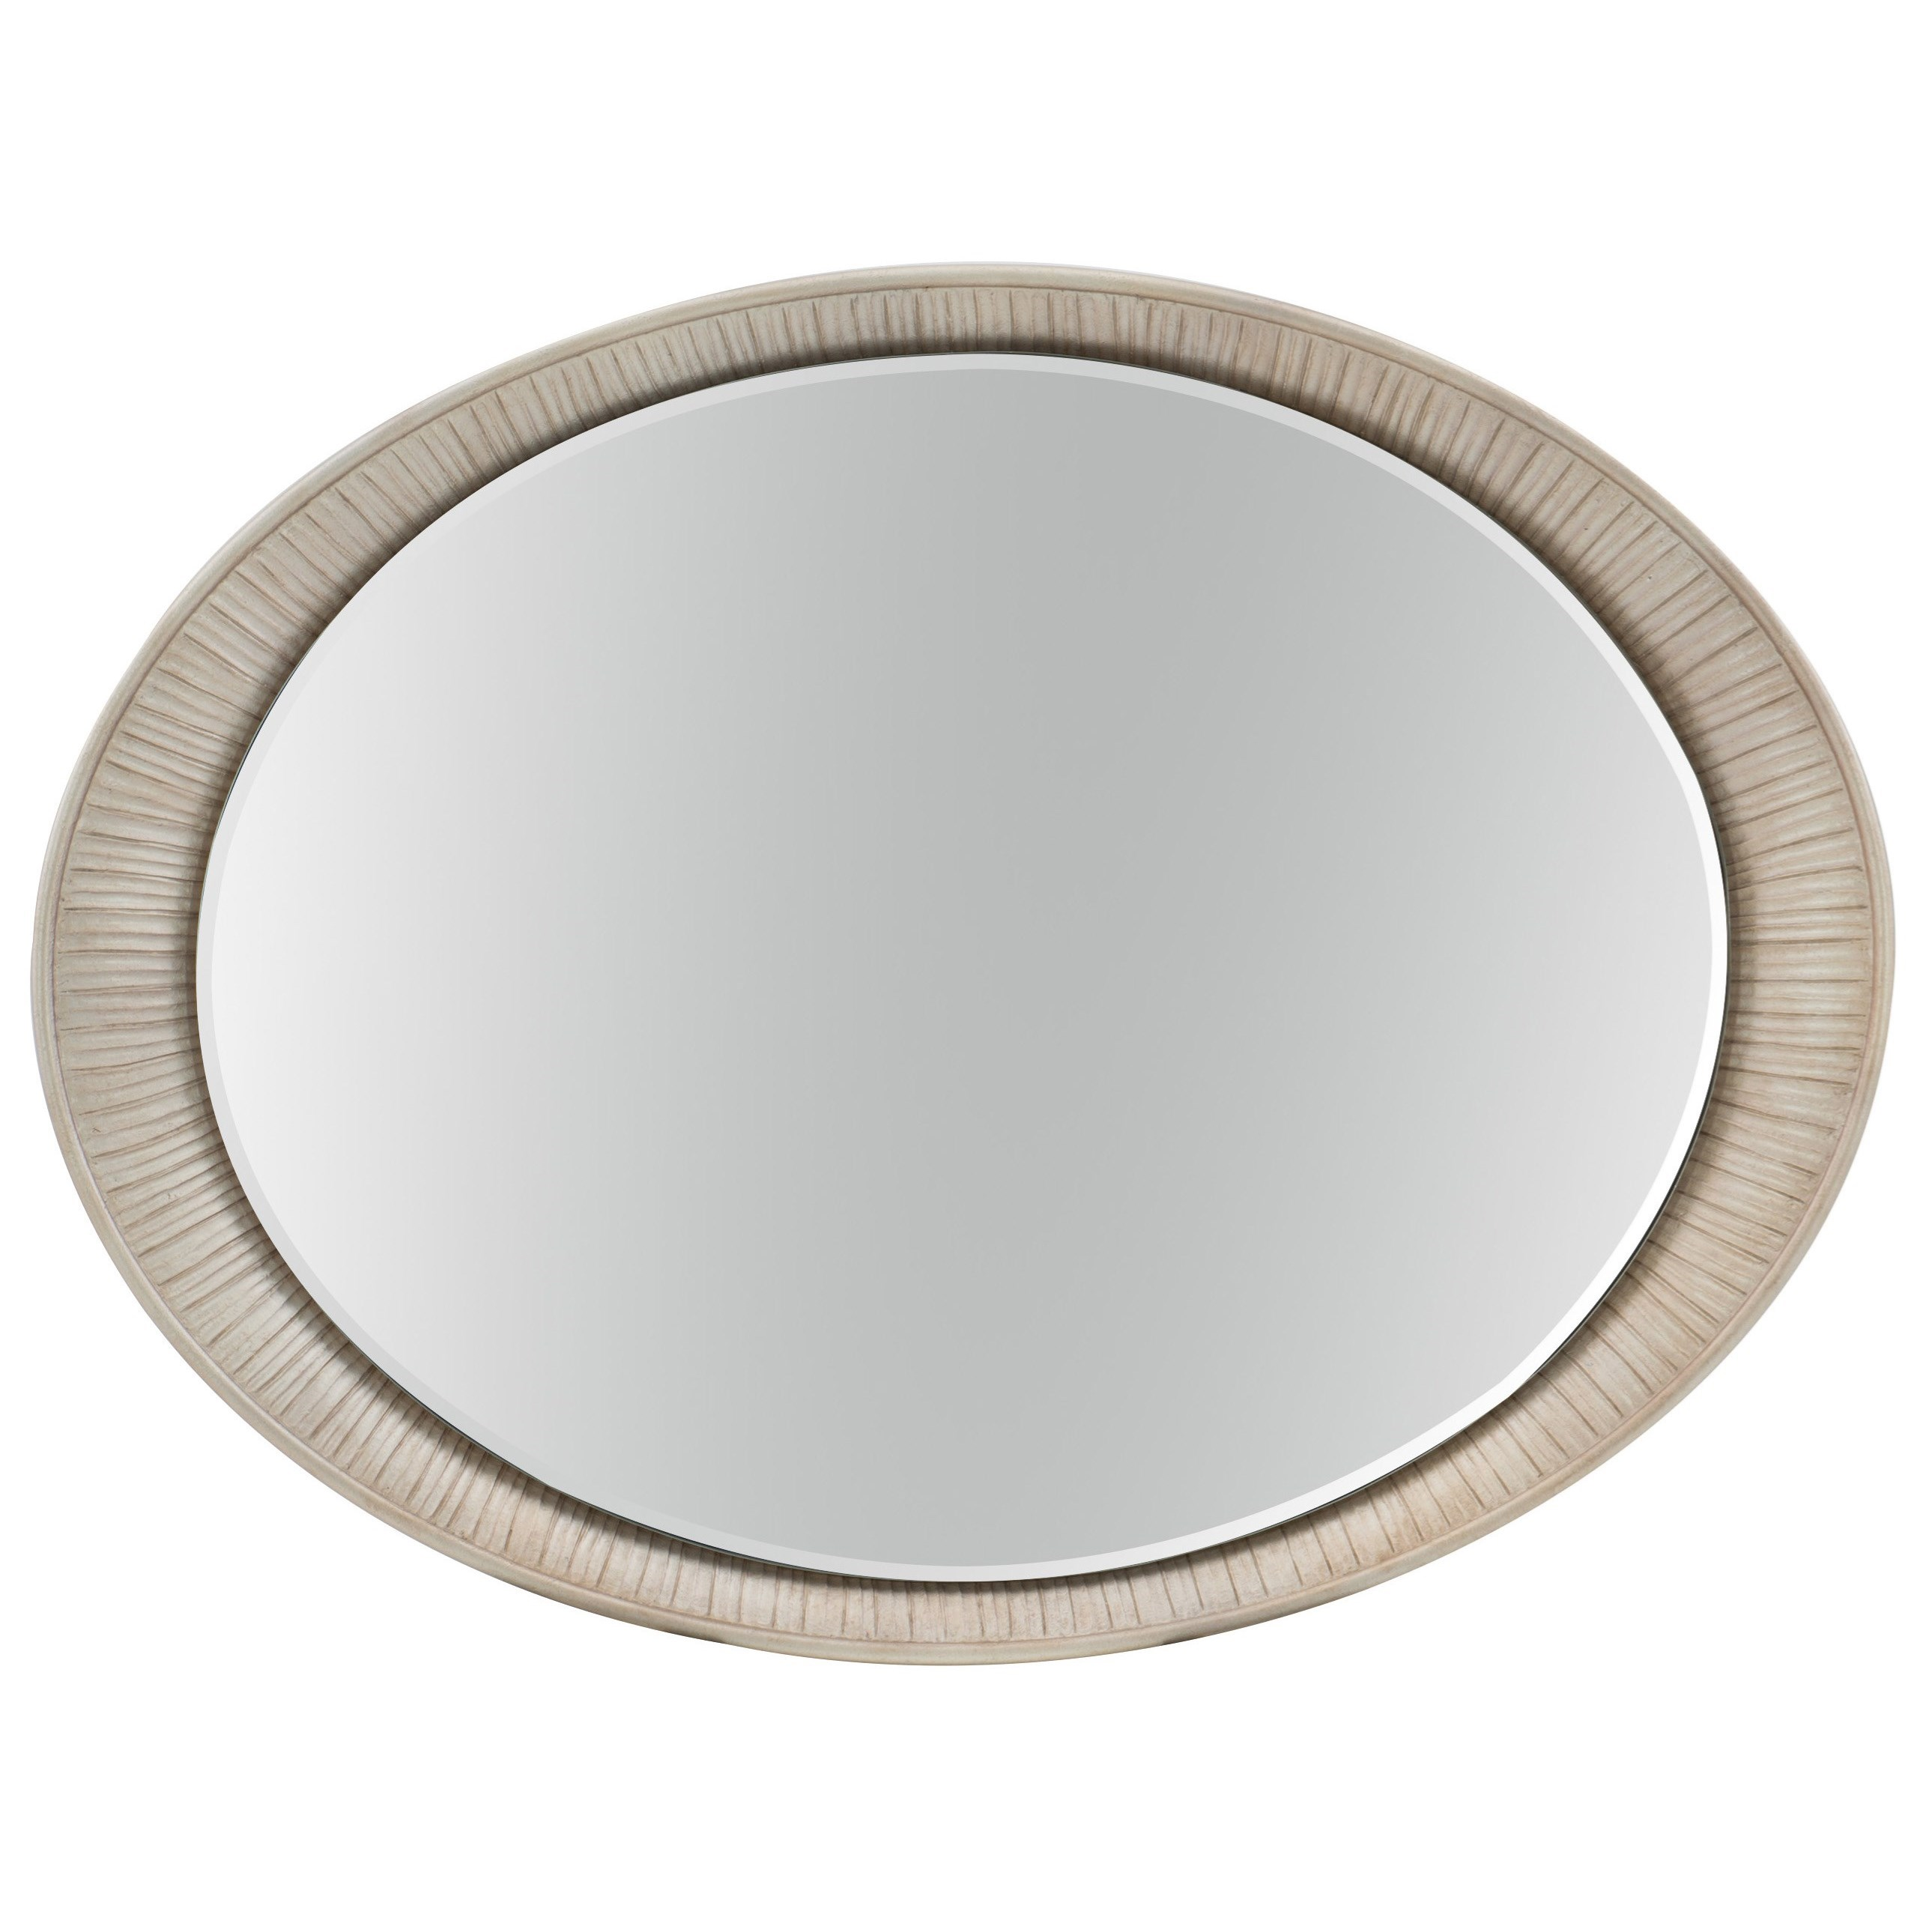 Hooker furniture elixir oval accent mirror with carved for Accent wall mirrors